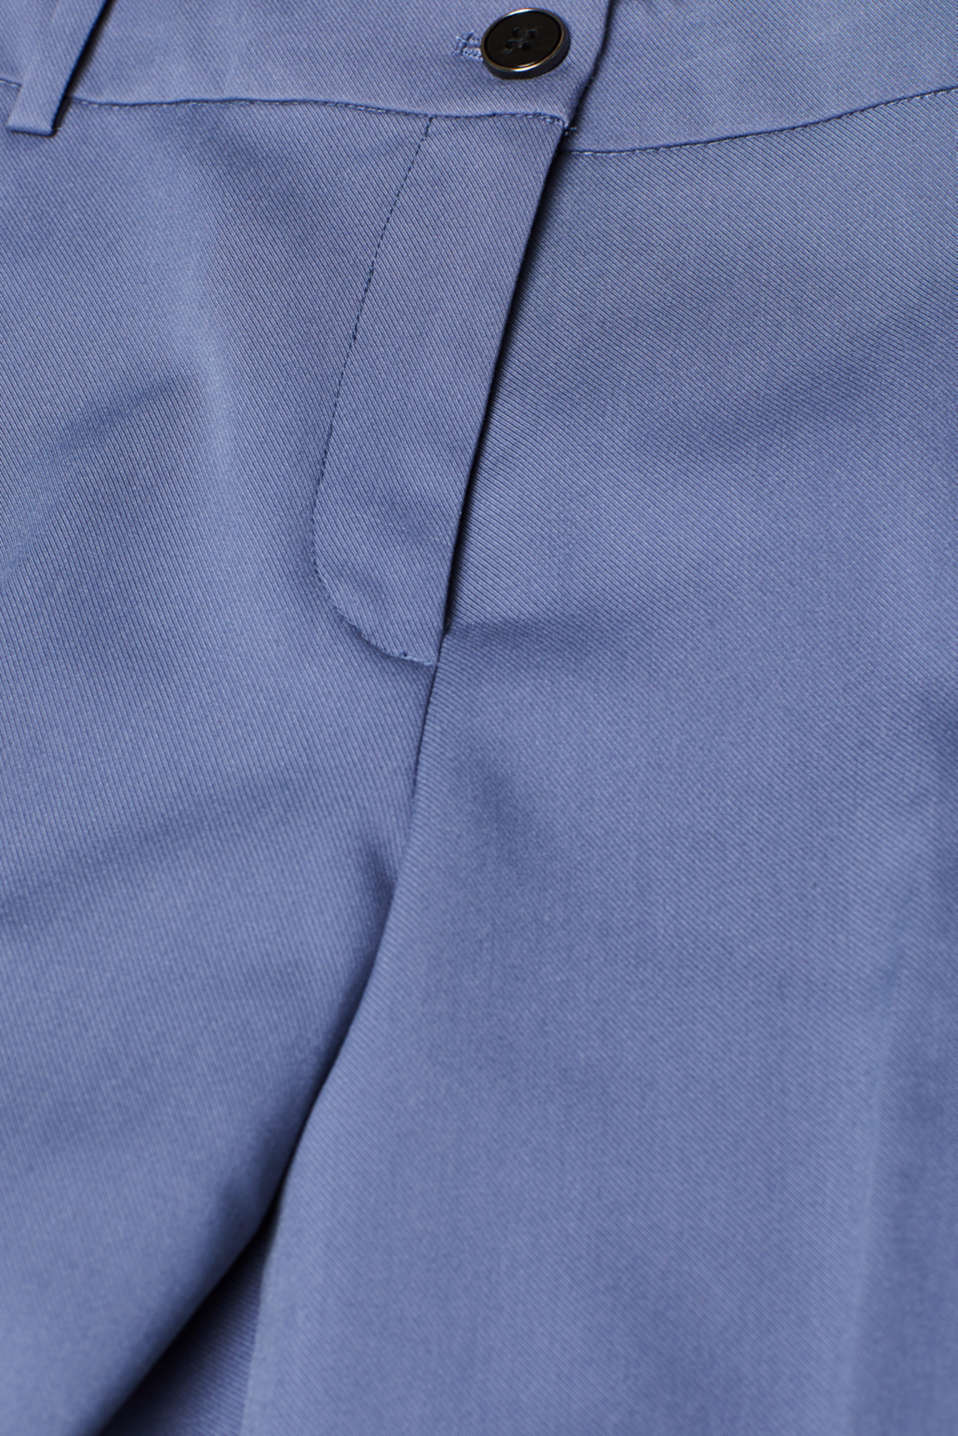 STITCHING mix + match stretch trousers with decorative stitching, GREY BLUE 2, detail image number 4